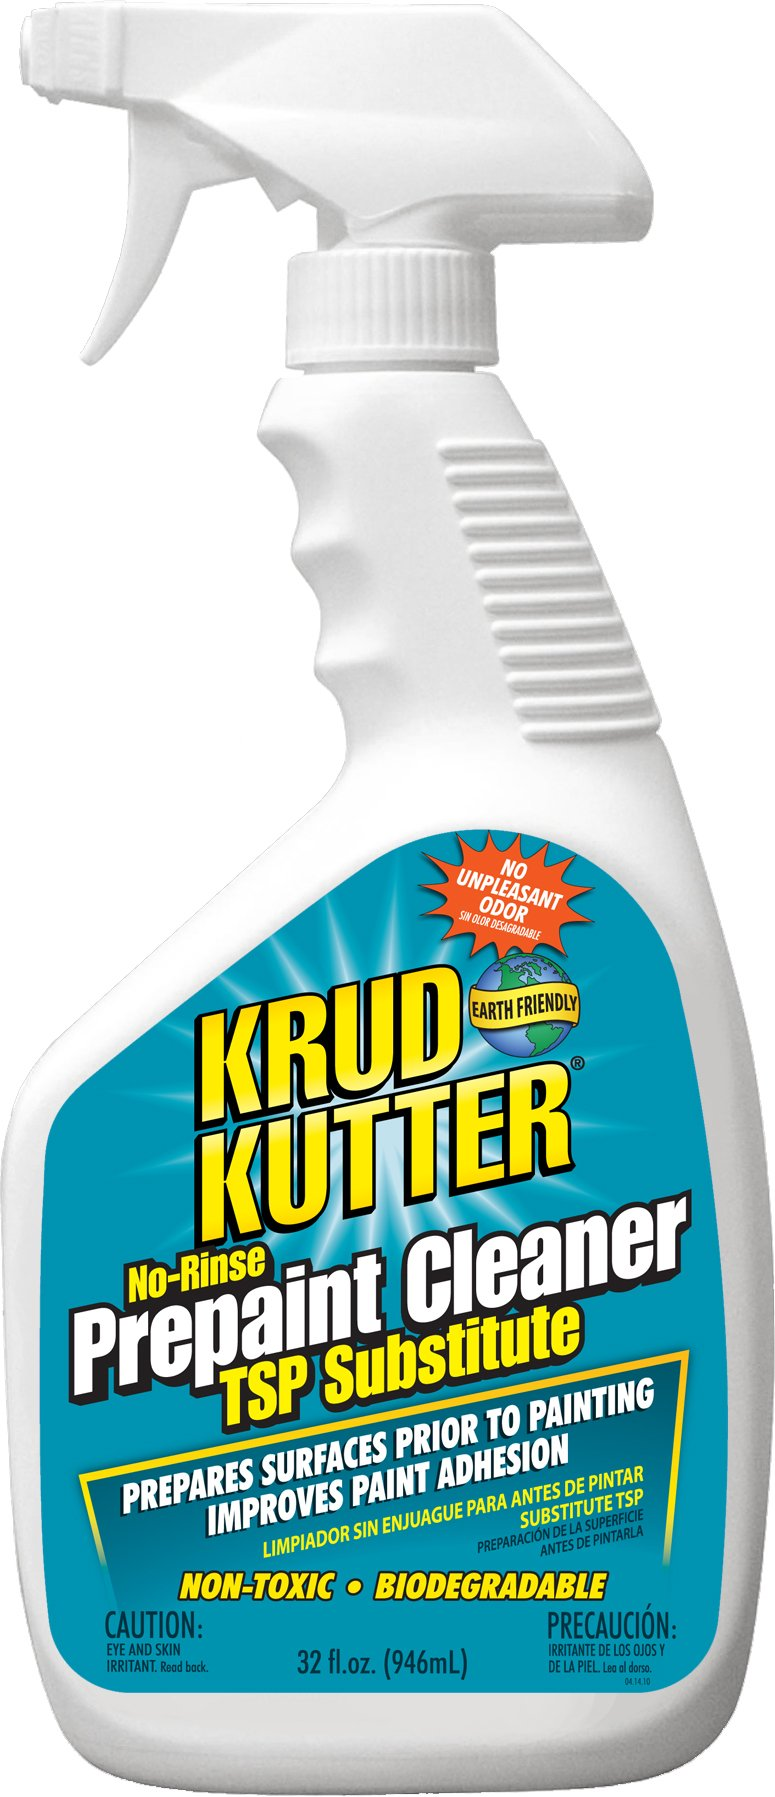 KRUD KUTTER PC32 Prepaint Cleaner/TSP Substitute, 32-Ounce by Krud Kutter